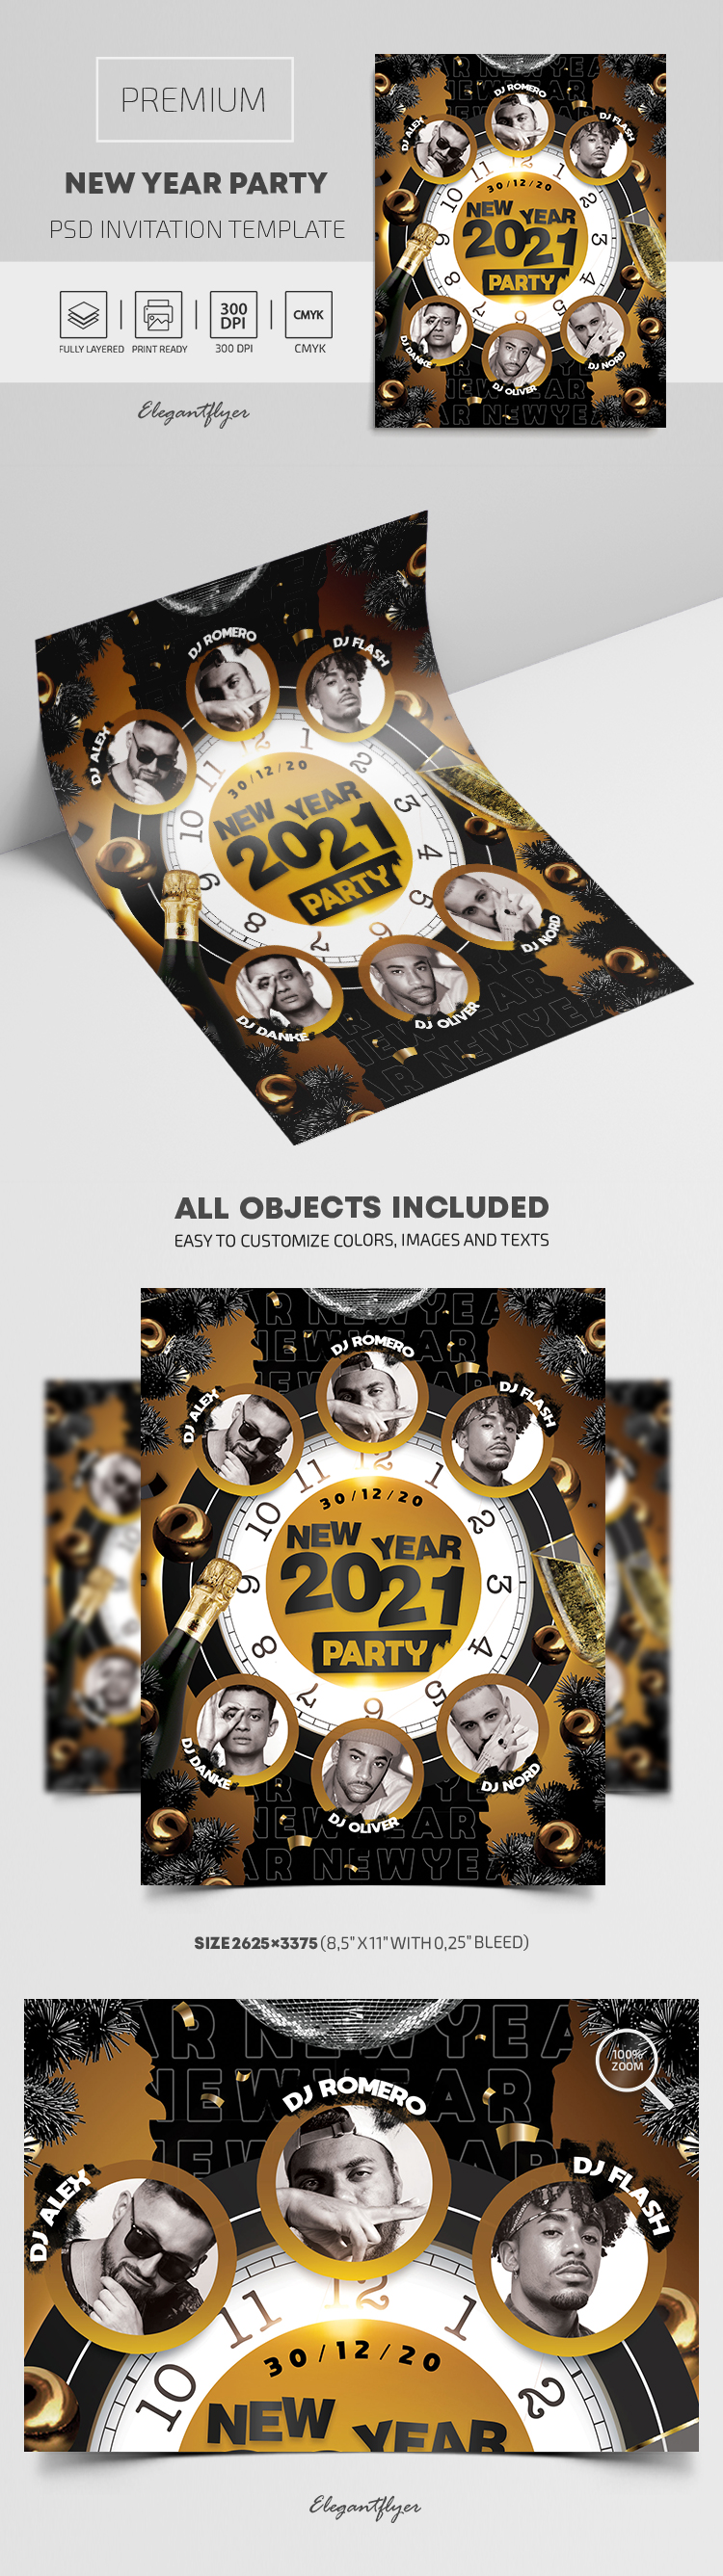 Premium New Year Party Invitation PSD Template